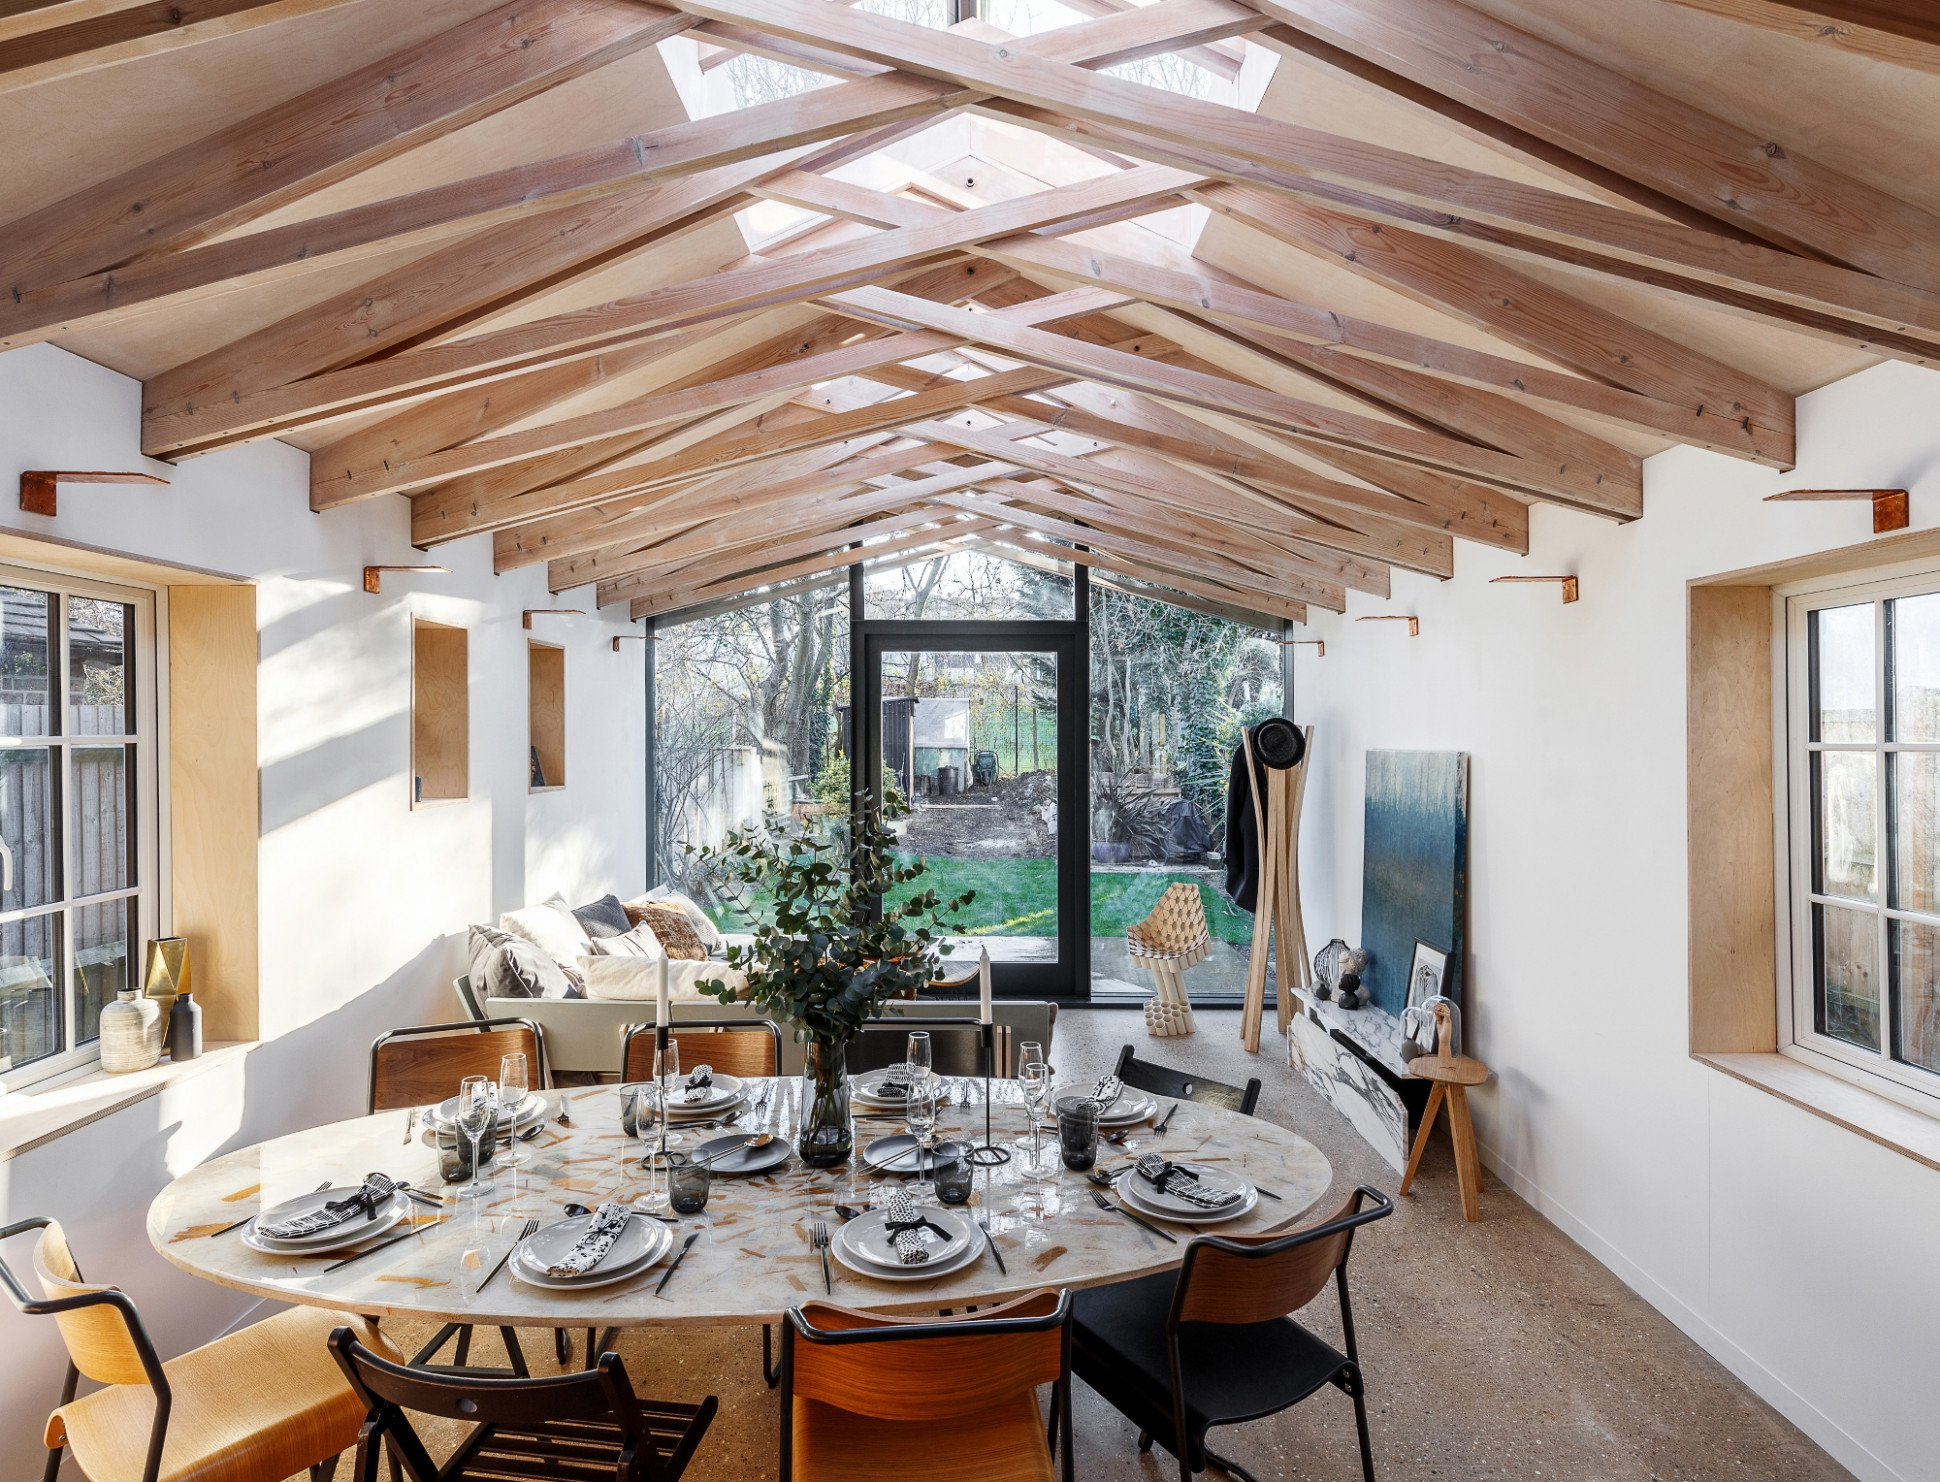 House Extensions For Every Budget: 11 Extension Ideas You ..